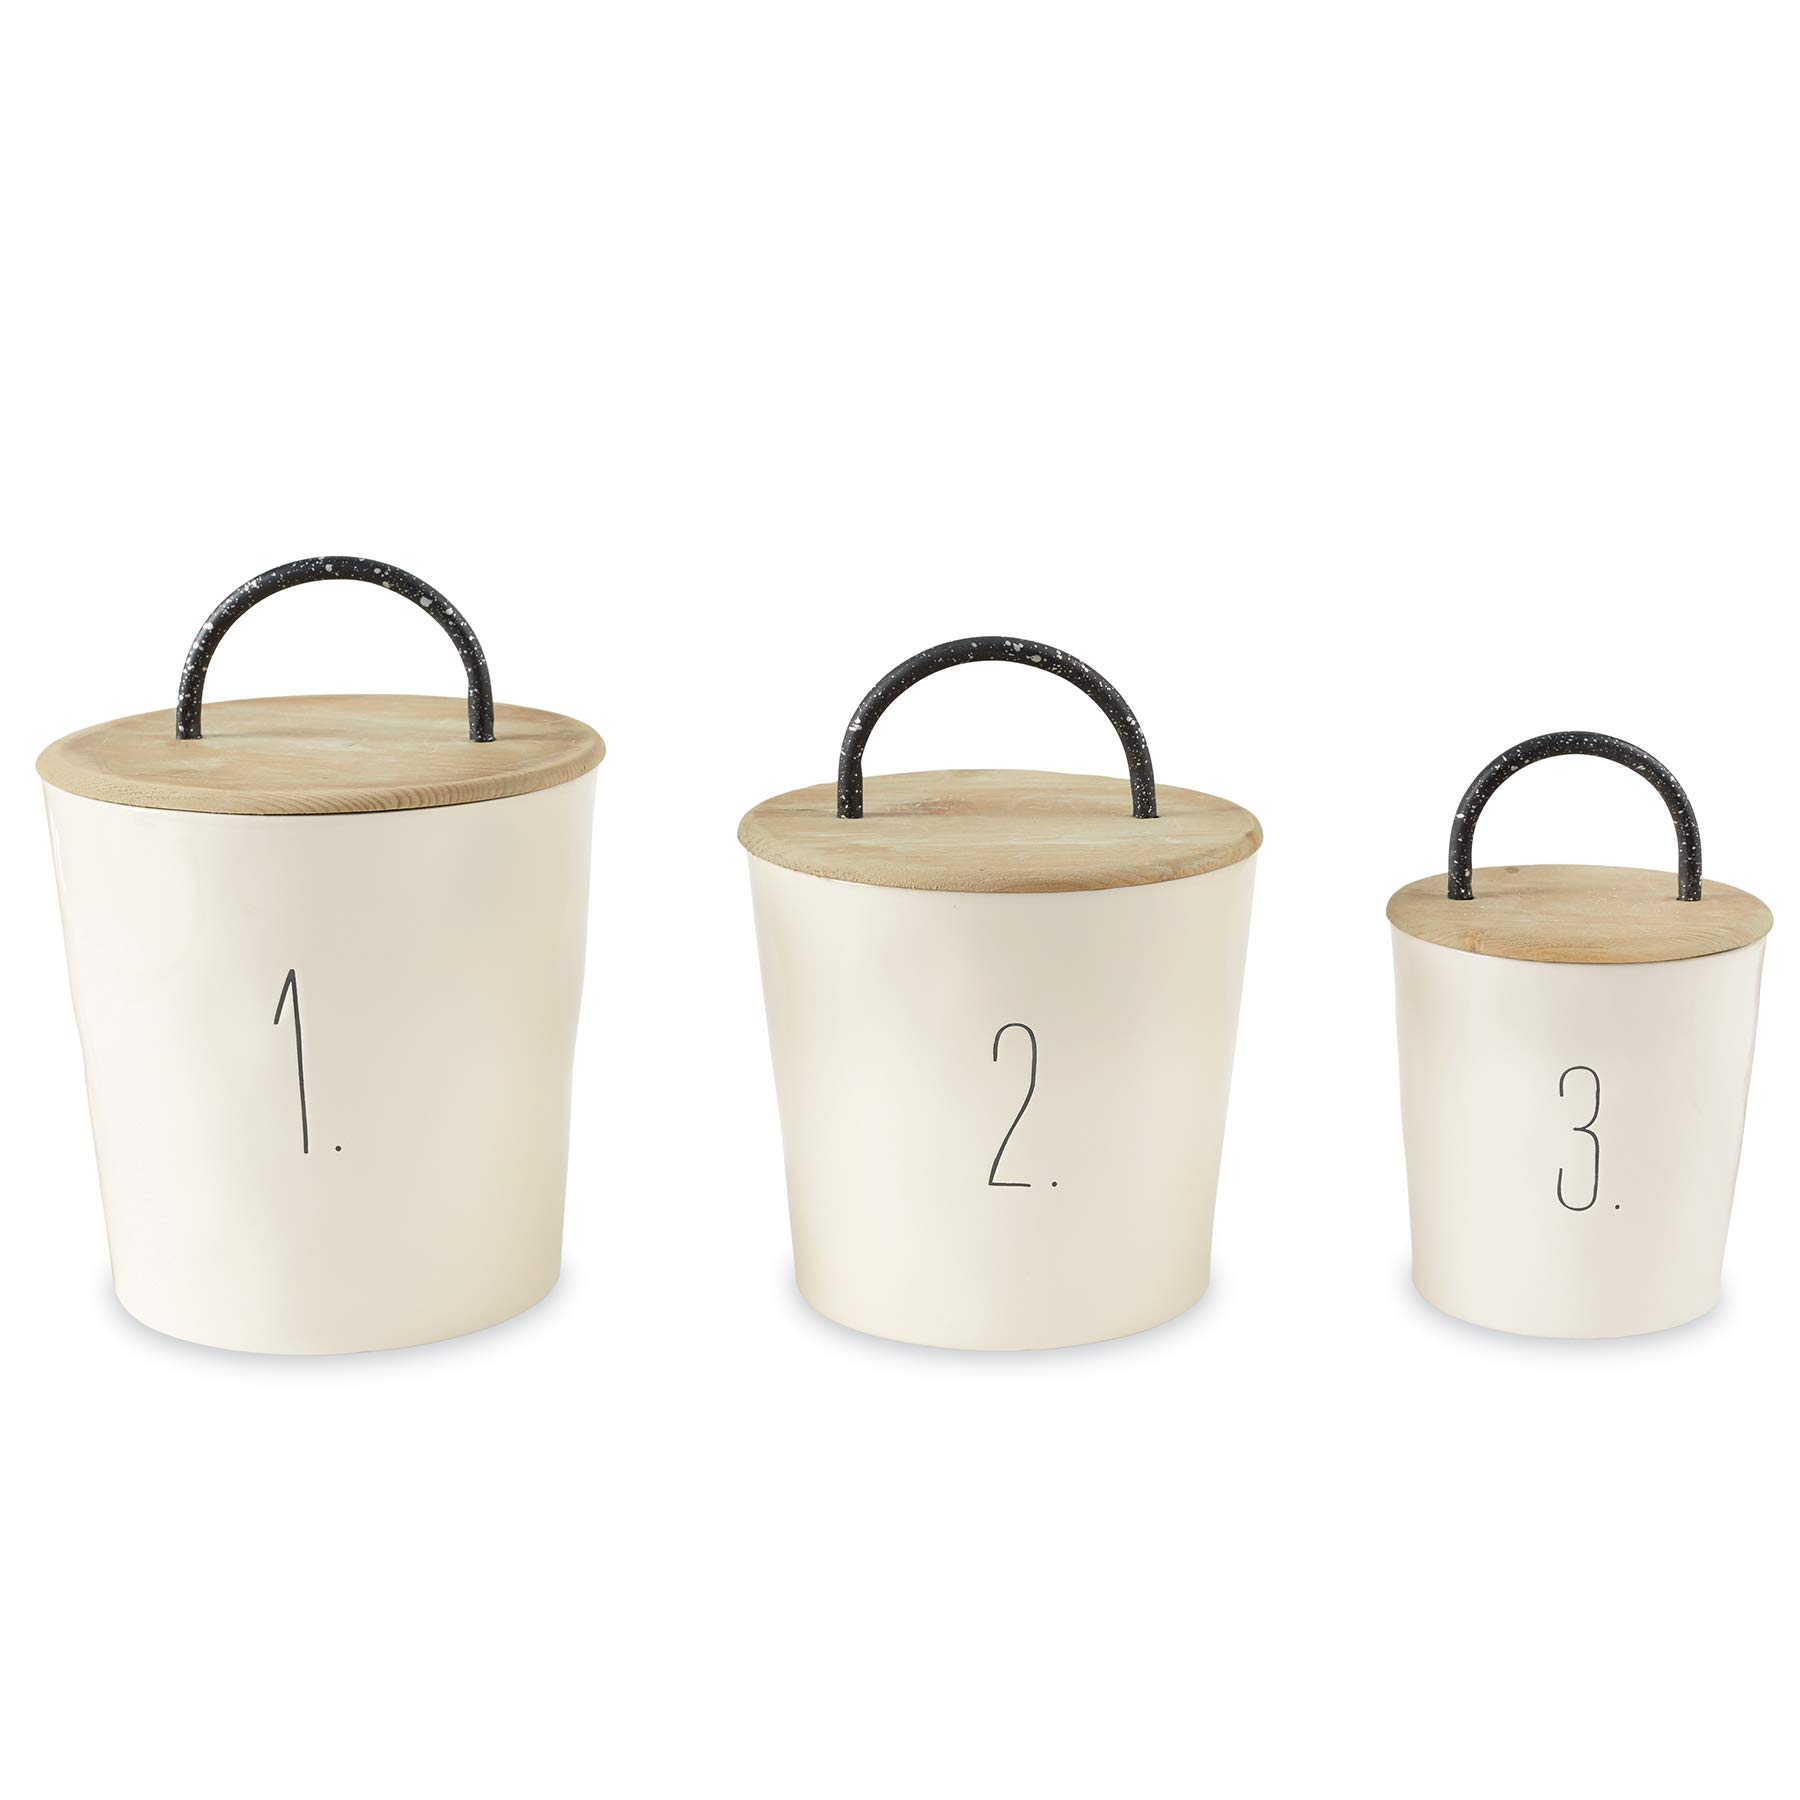 Mud Pie 49300004 Farmhouse Wooden Lids Set of 3 Canister Set One Size White